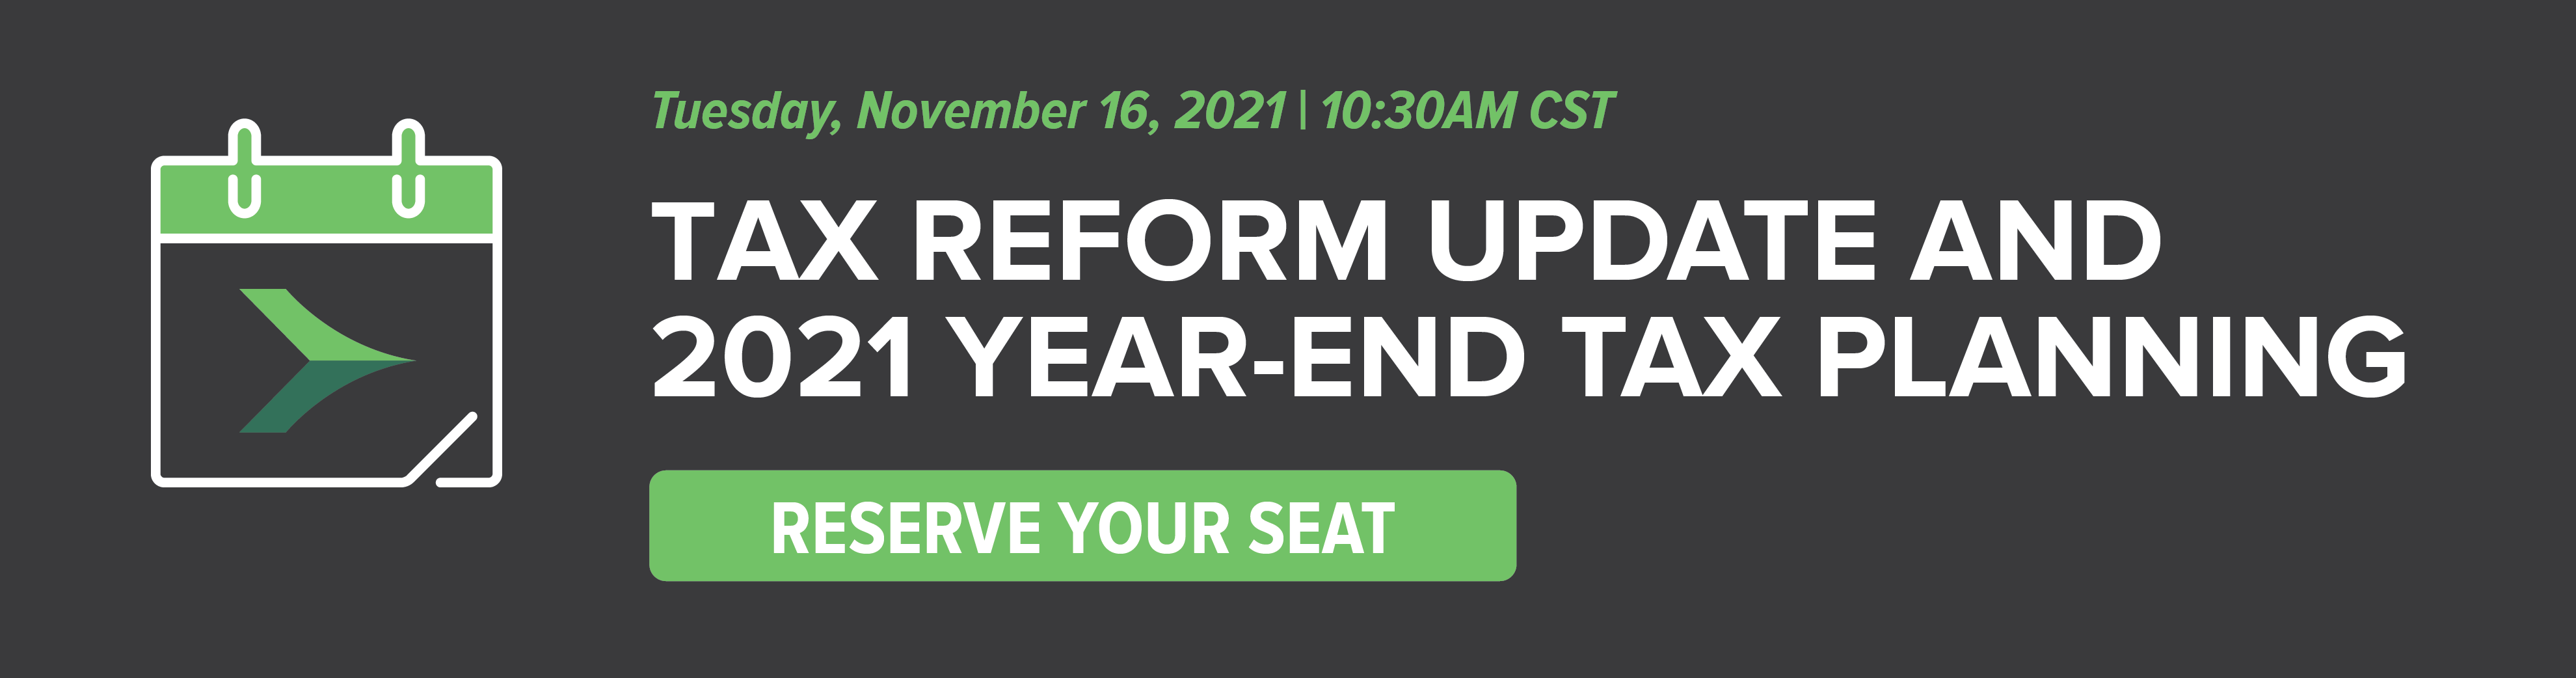 Tax Reform Update and 2021 Year-End Tax Planning Series